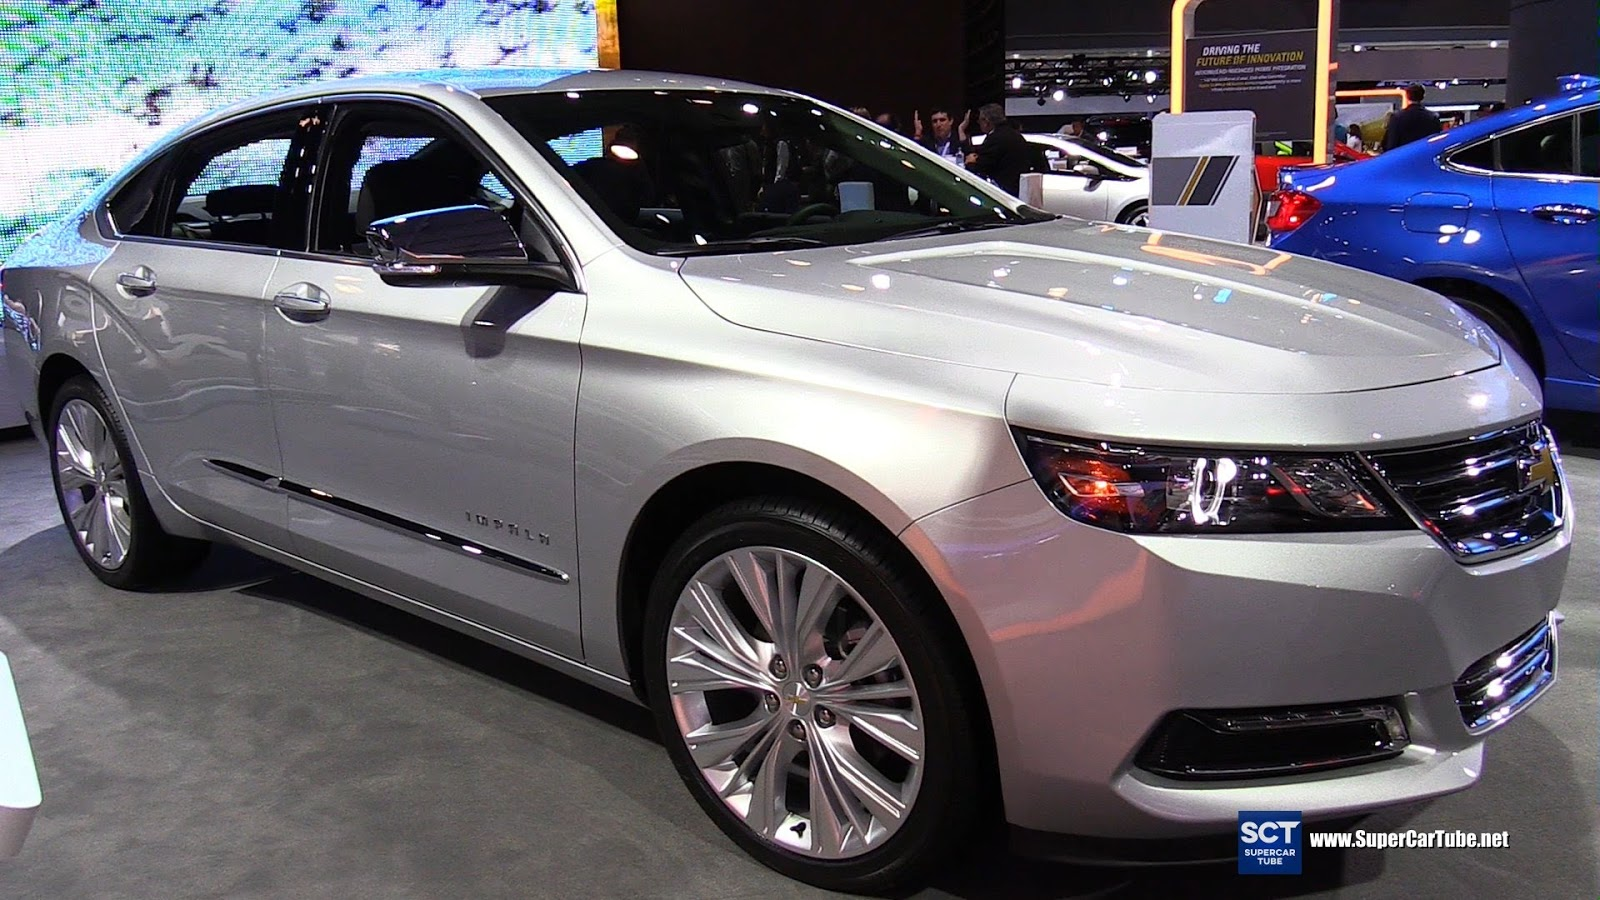 Rumor has it that 2016 chevrolet impala will be introduced at the end of the year 2015 or early 2016 the price for the standard version will be around